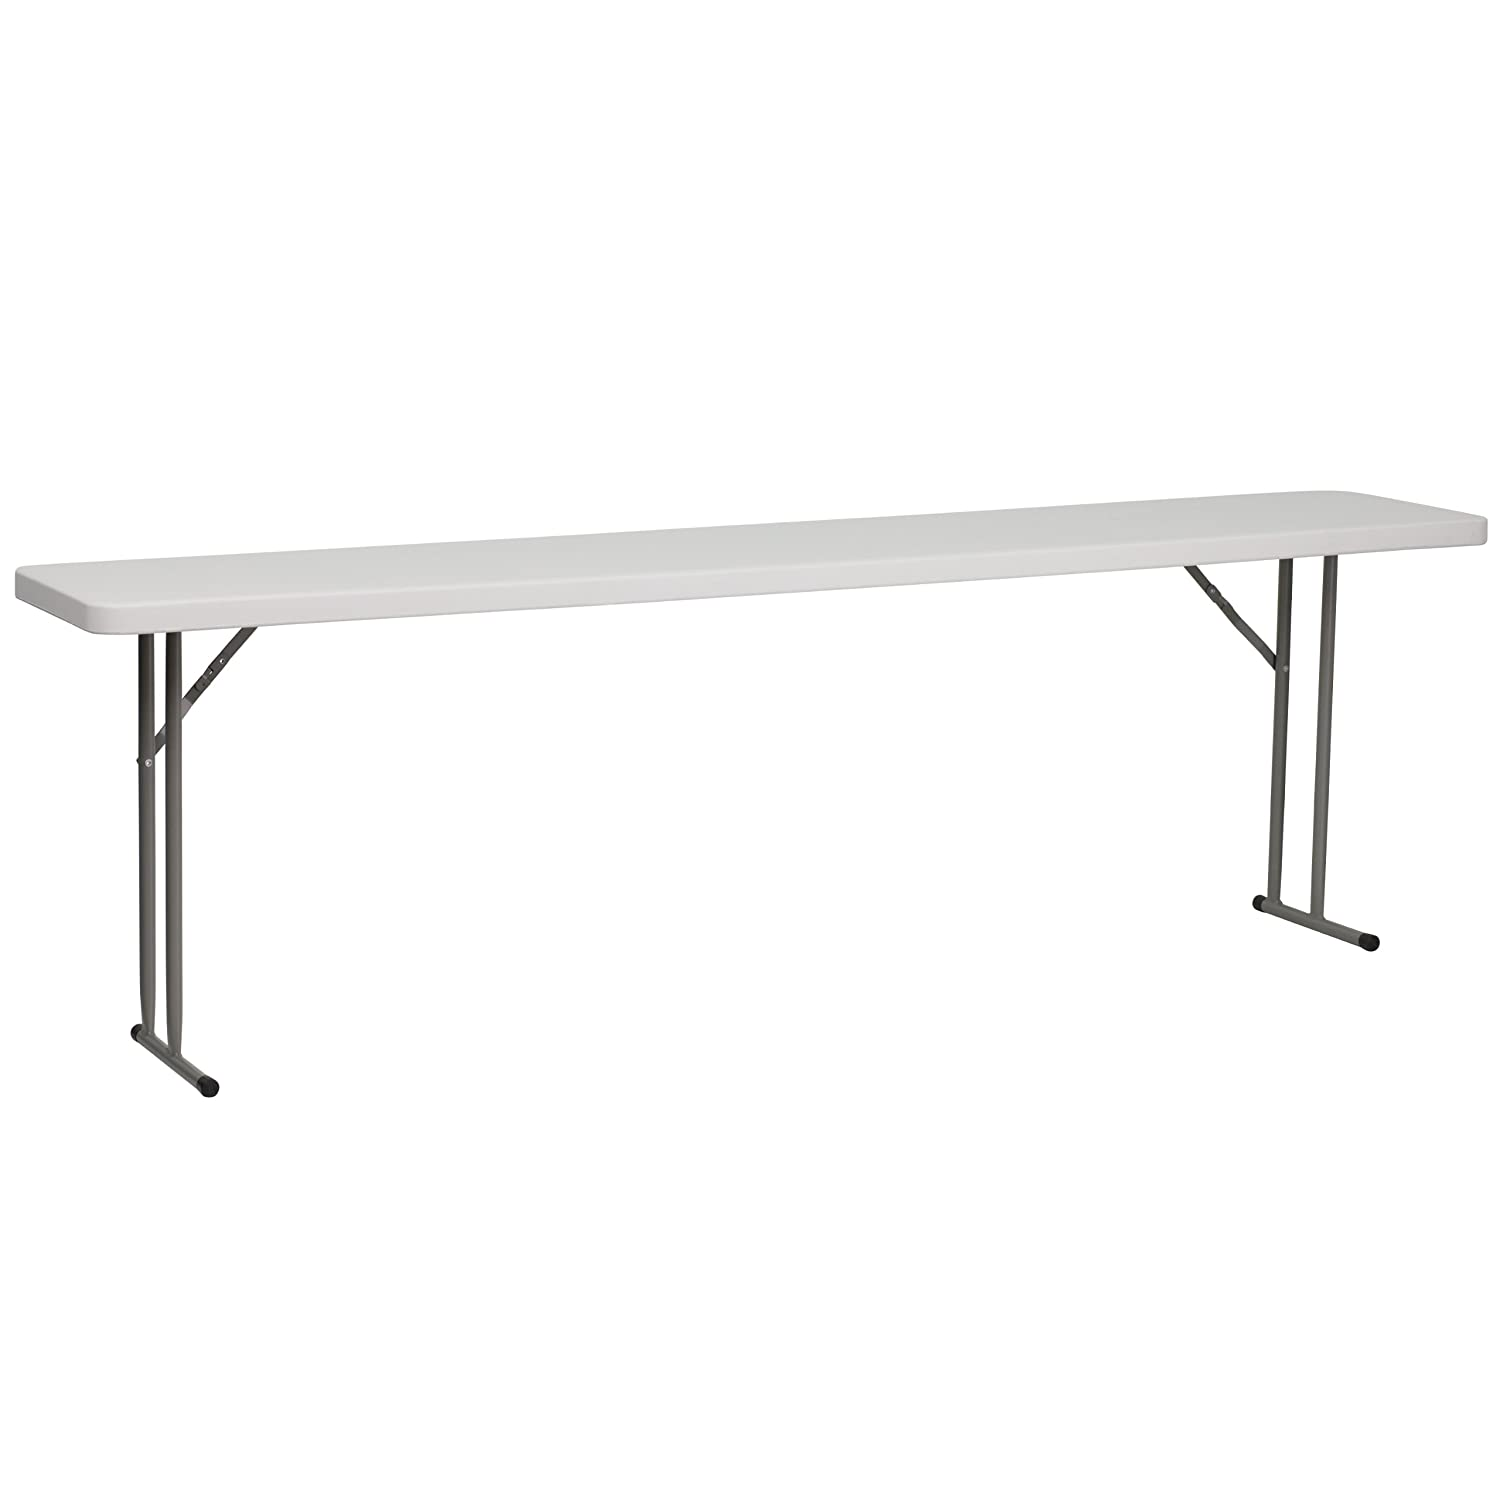 Flash Furniture 18''W x 96''L Granite White Plastic Folding Training Table RB-1896-GG